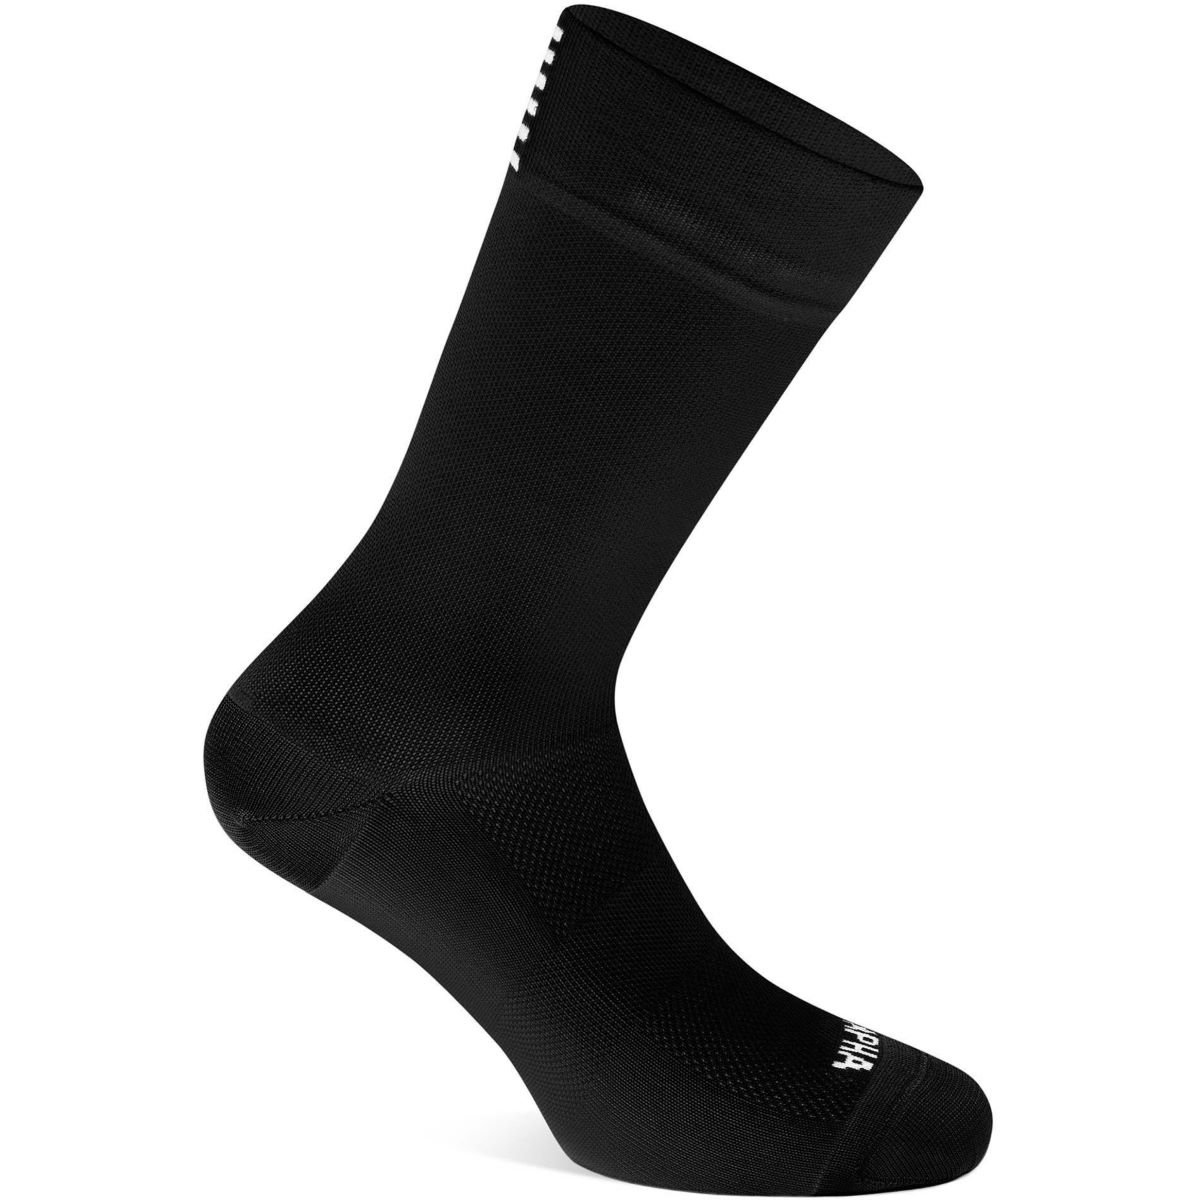 Calcetines Rapha Pro Team (caña normal) - Calcetines